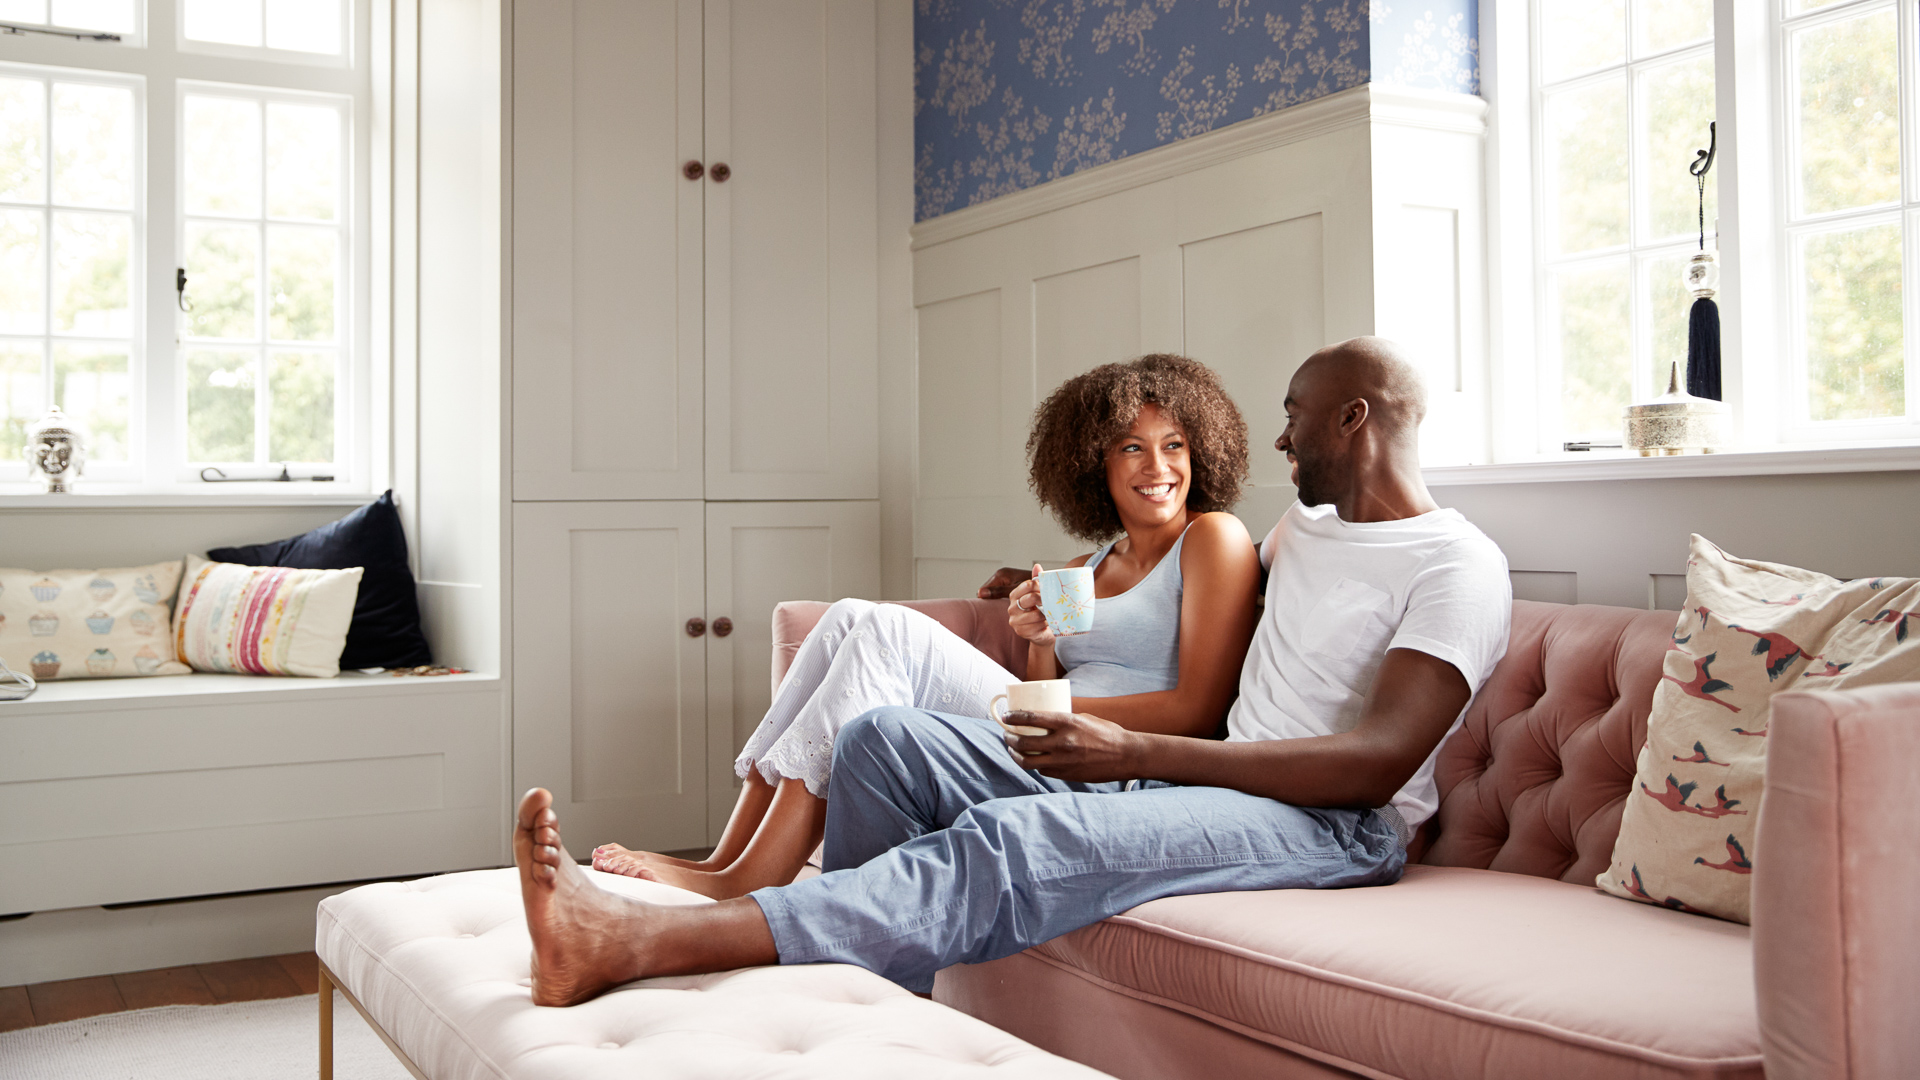 Young black couple sitting together on couch in living room drinking coffee and talking in the morning, low angle, full length.